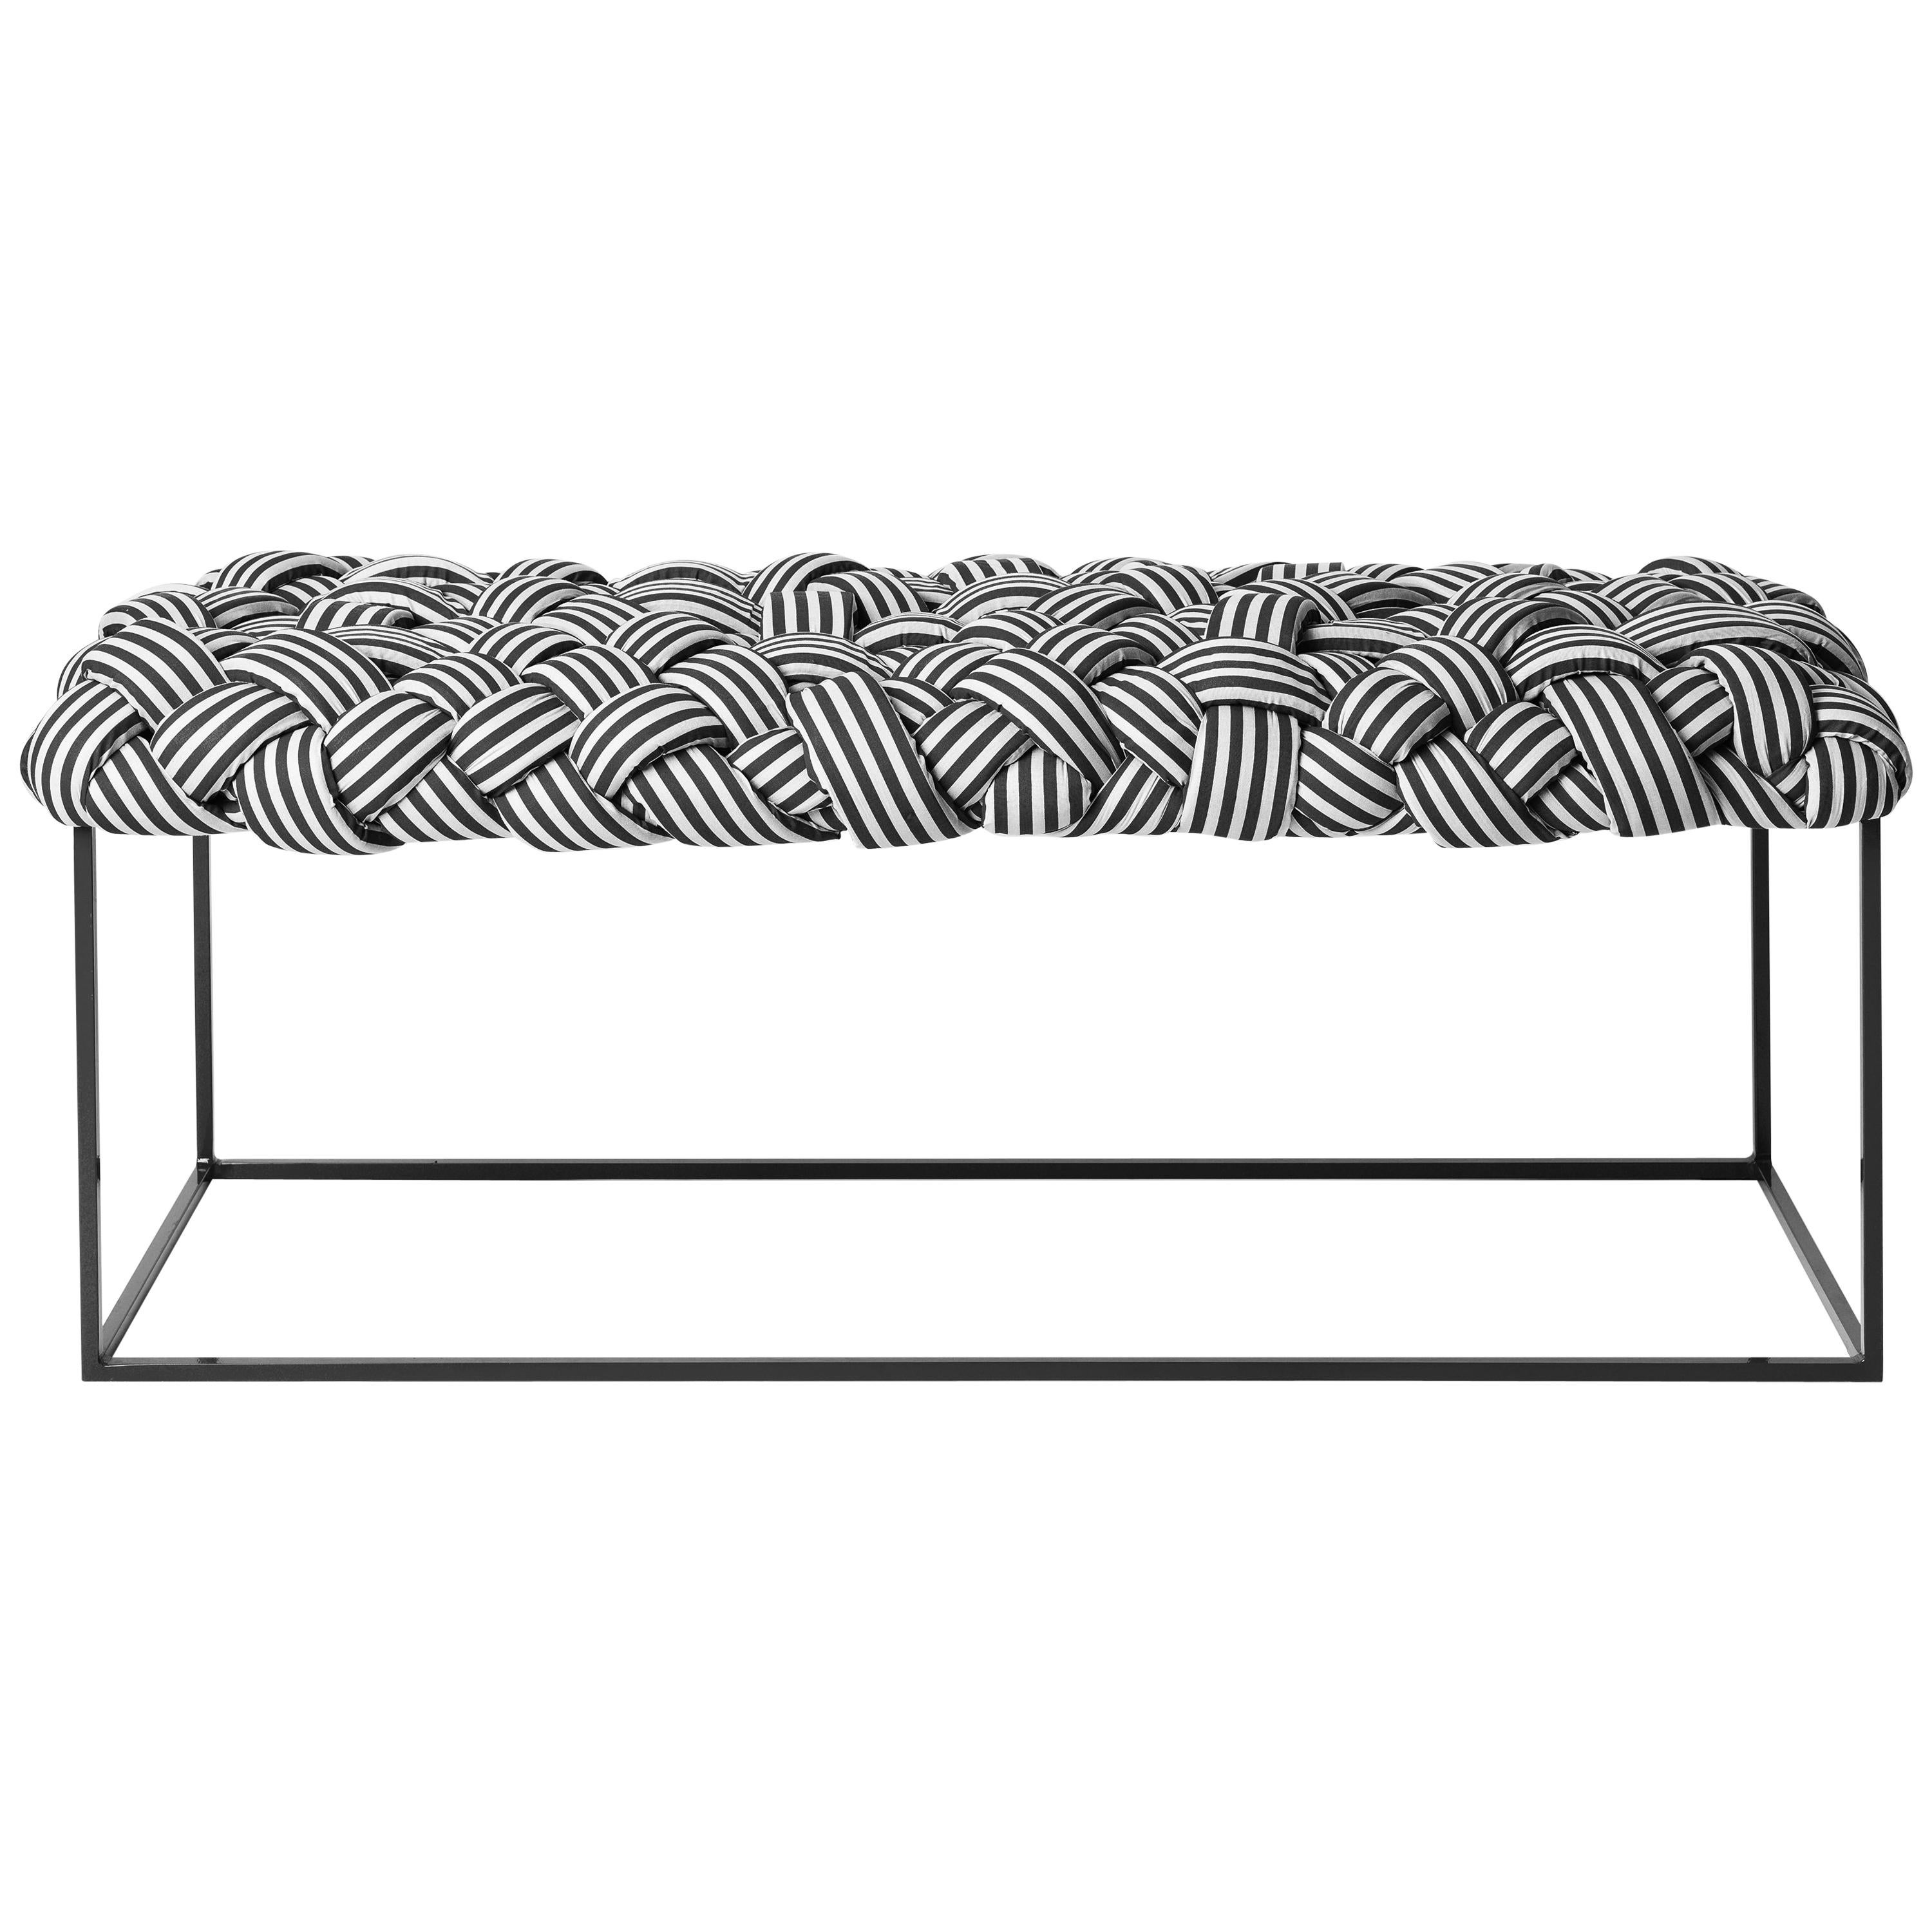 Contemporary Bench with Handwoven B&W Upholstery